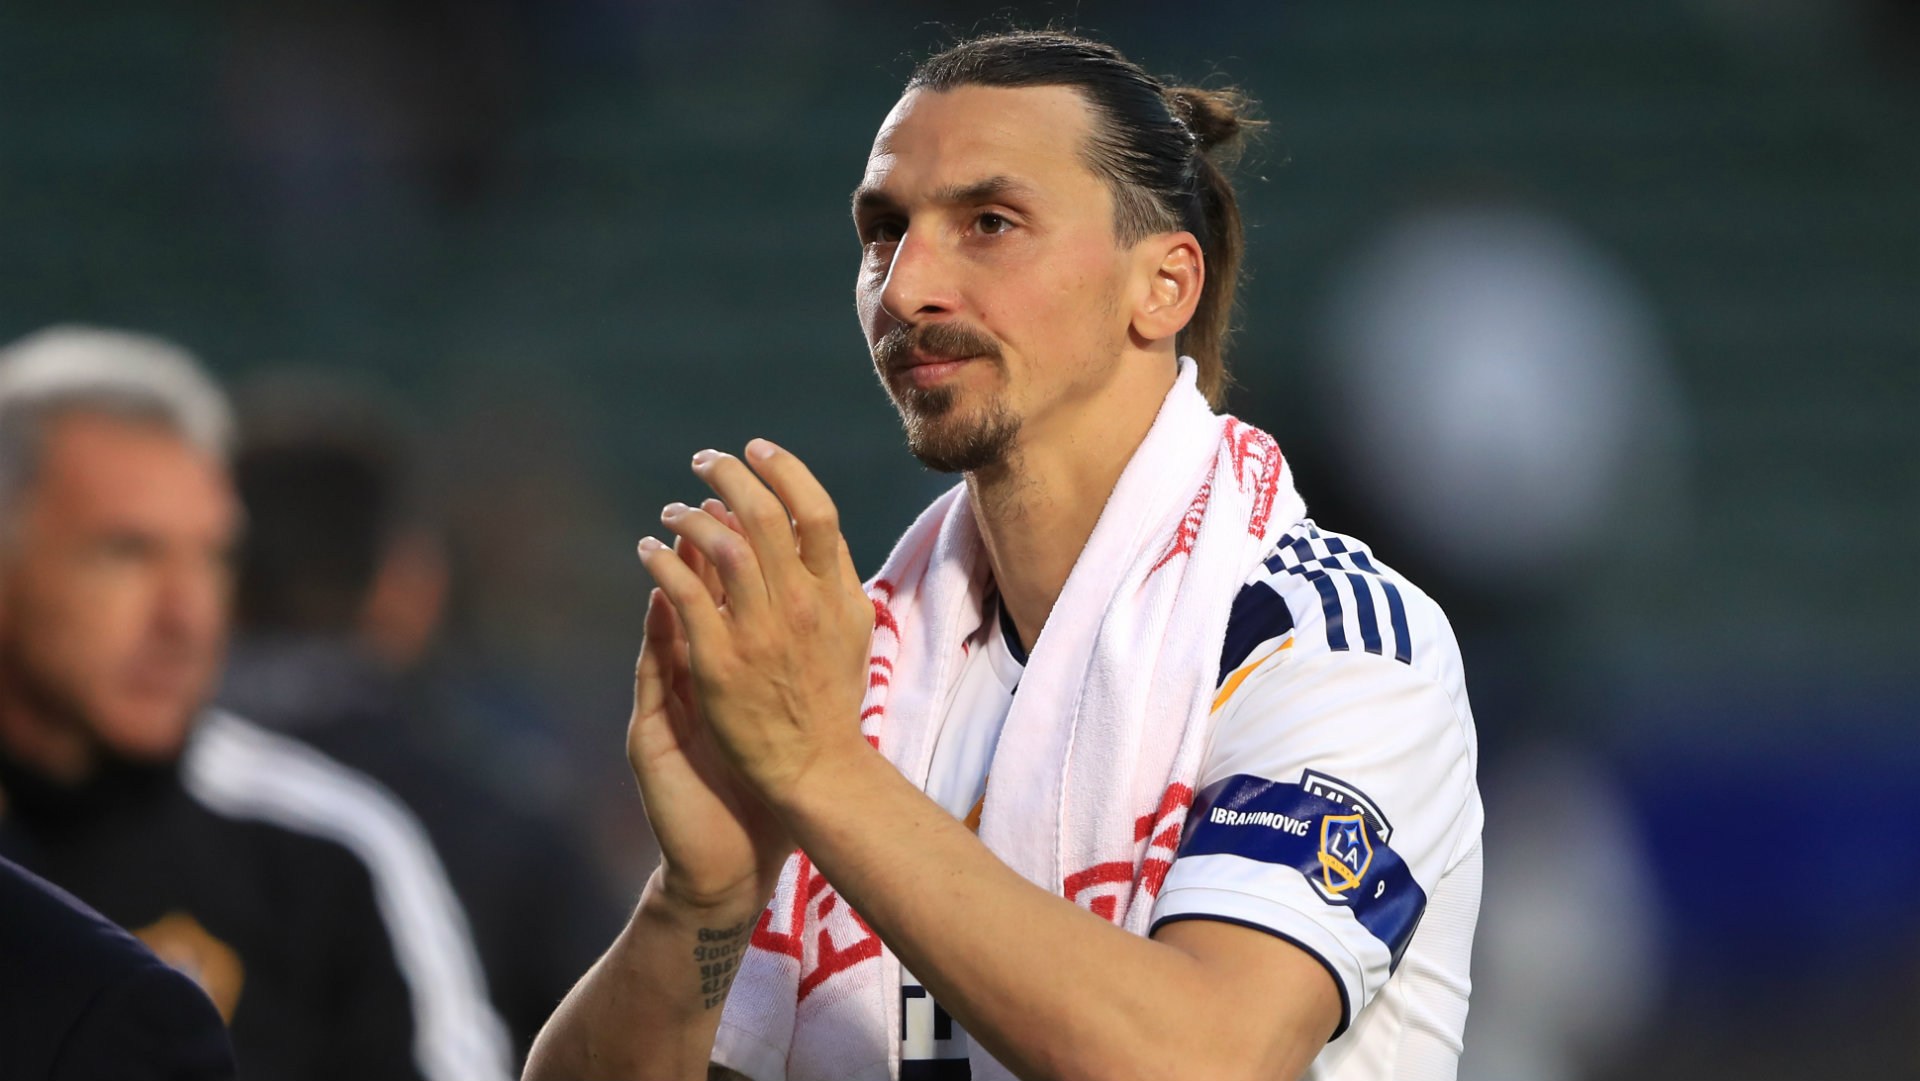 Ibrahimovic statue to be unveiled in legendary Sweden striker's hometown of Malmo